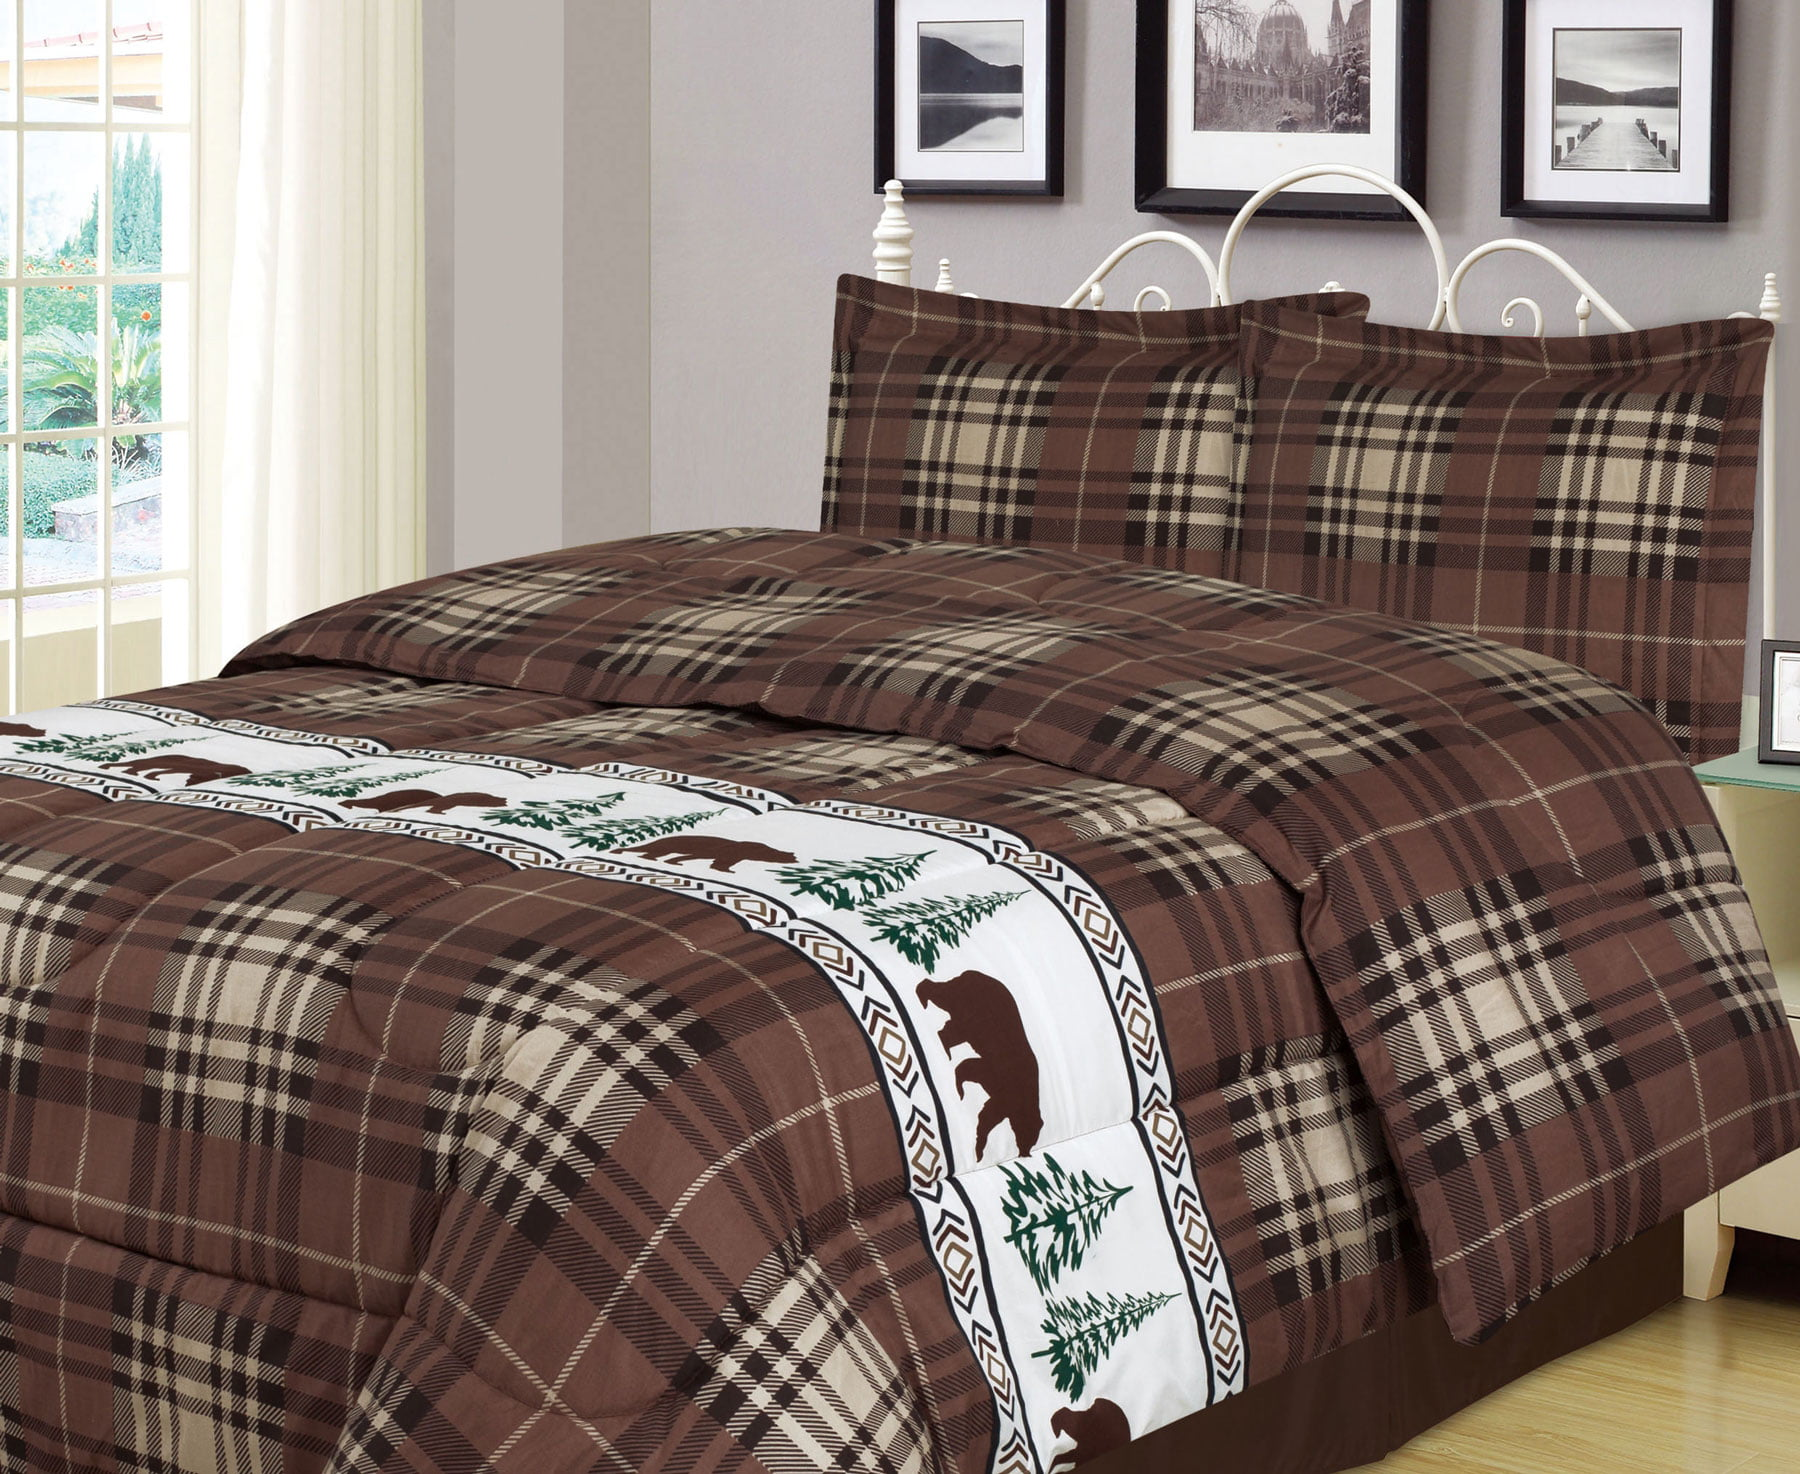 Plaid Bear Full Queen Comforter 3 Piece Bedding Set Rustic Cabin Lodge Walmart Com Walmart Com